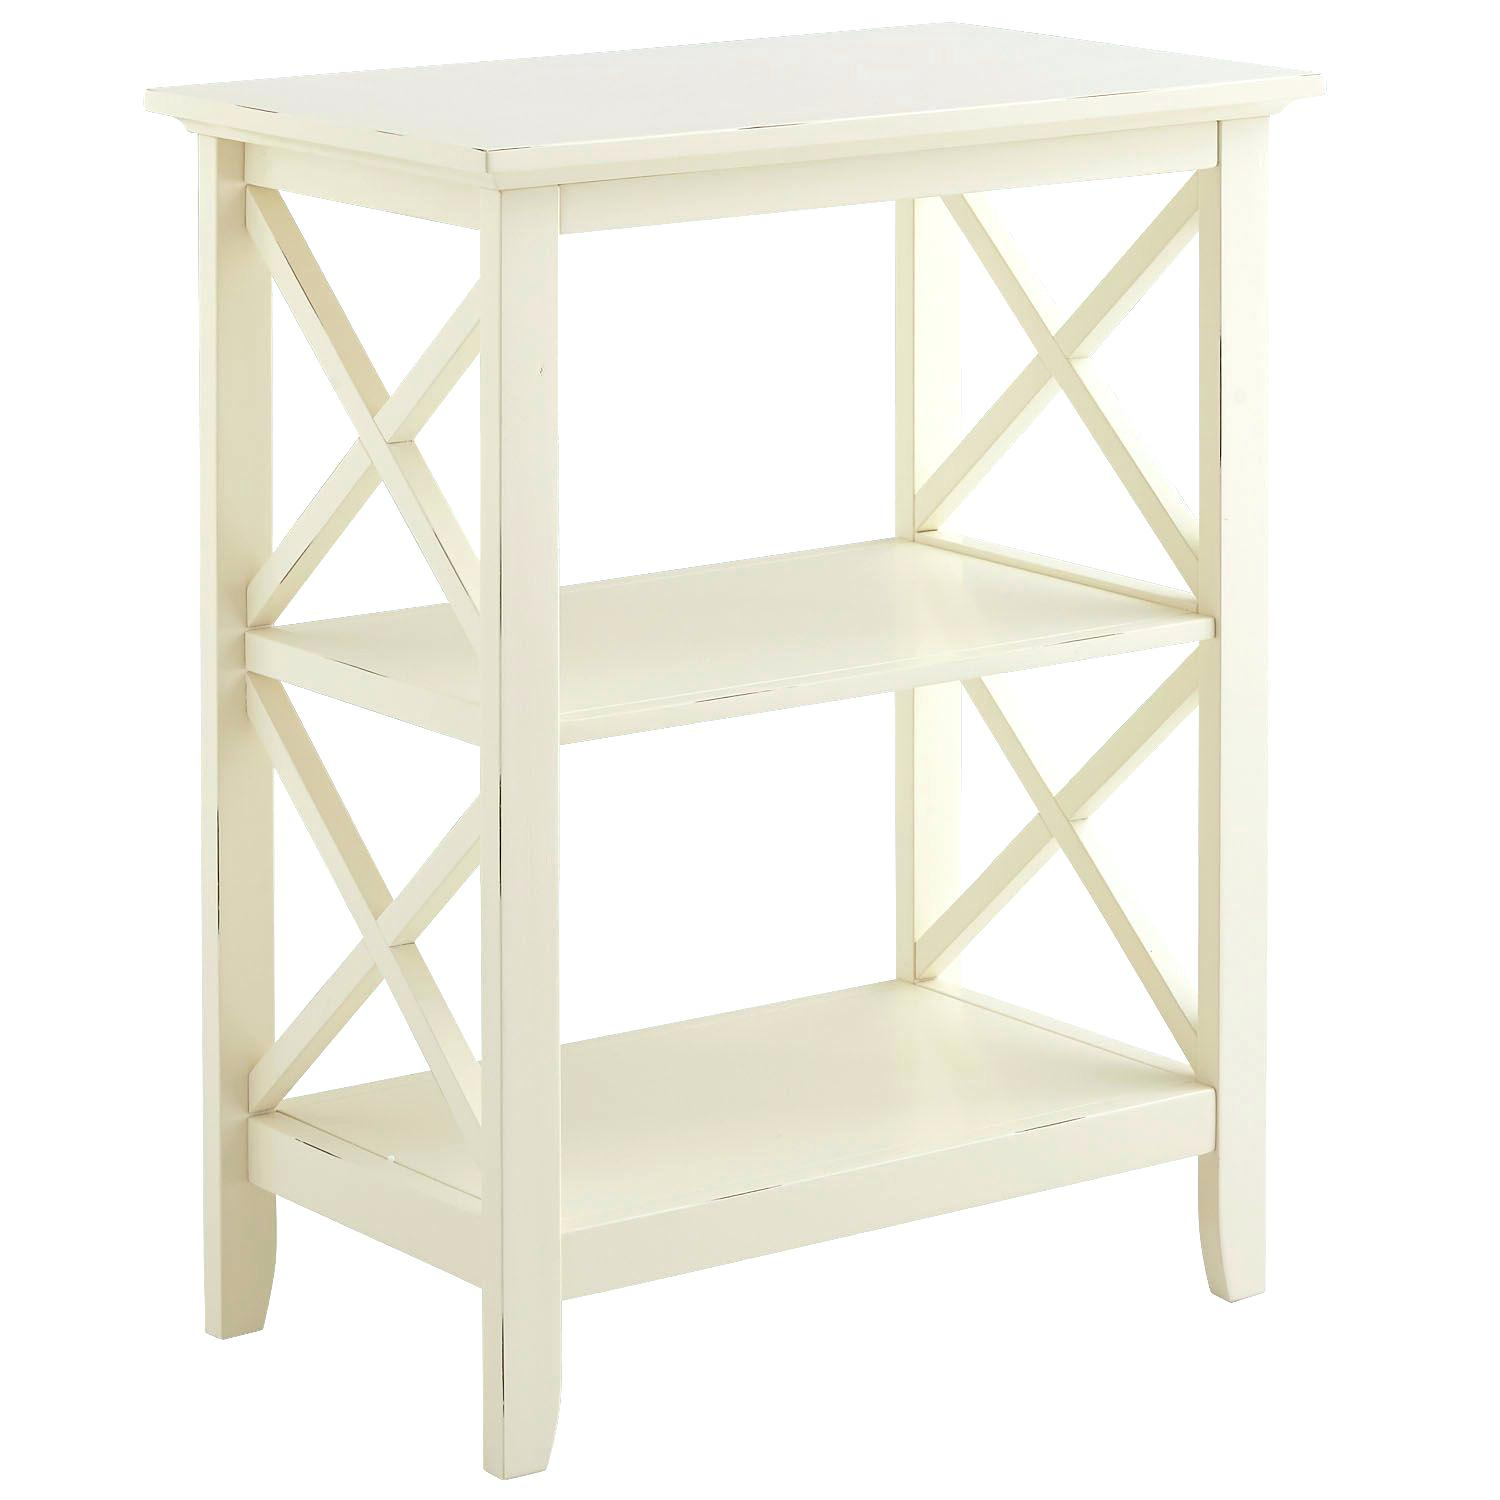 white accent table antique pier imports tables hiend accents front hall west elm bedroom ideas ethan allen painted furniture small brass coffee round skirts decorator bunnings